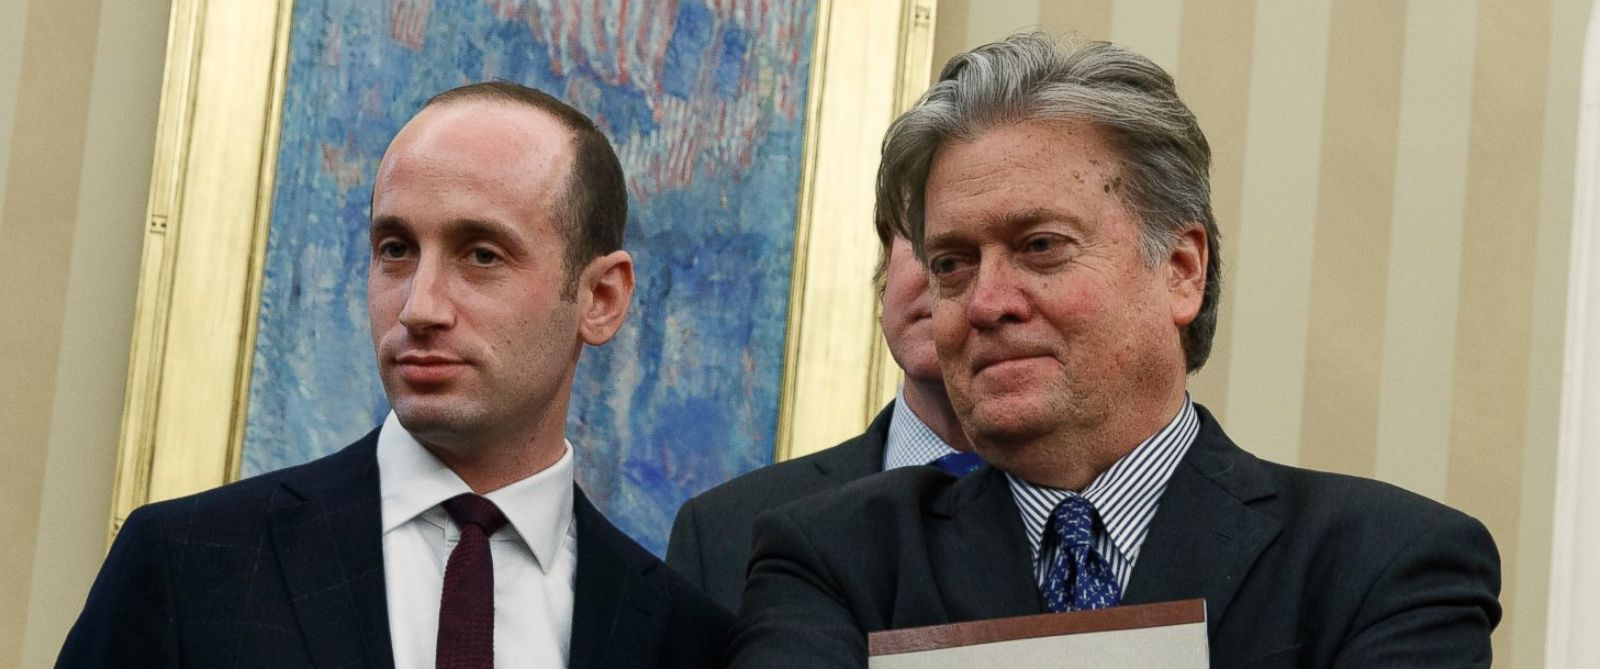 Image result for images of Steven Bannon and Miller